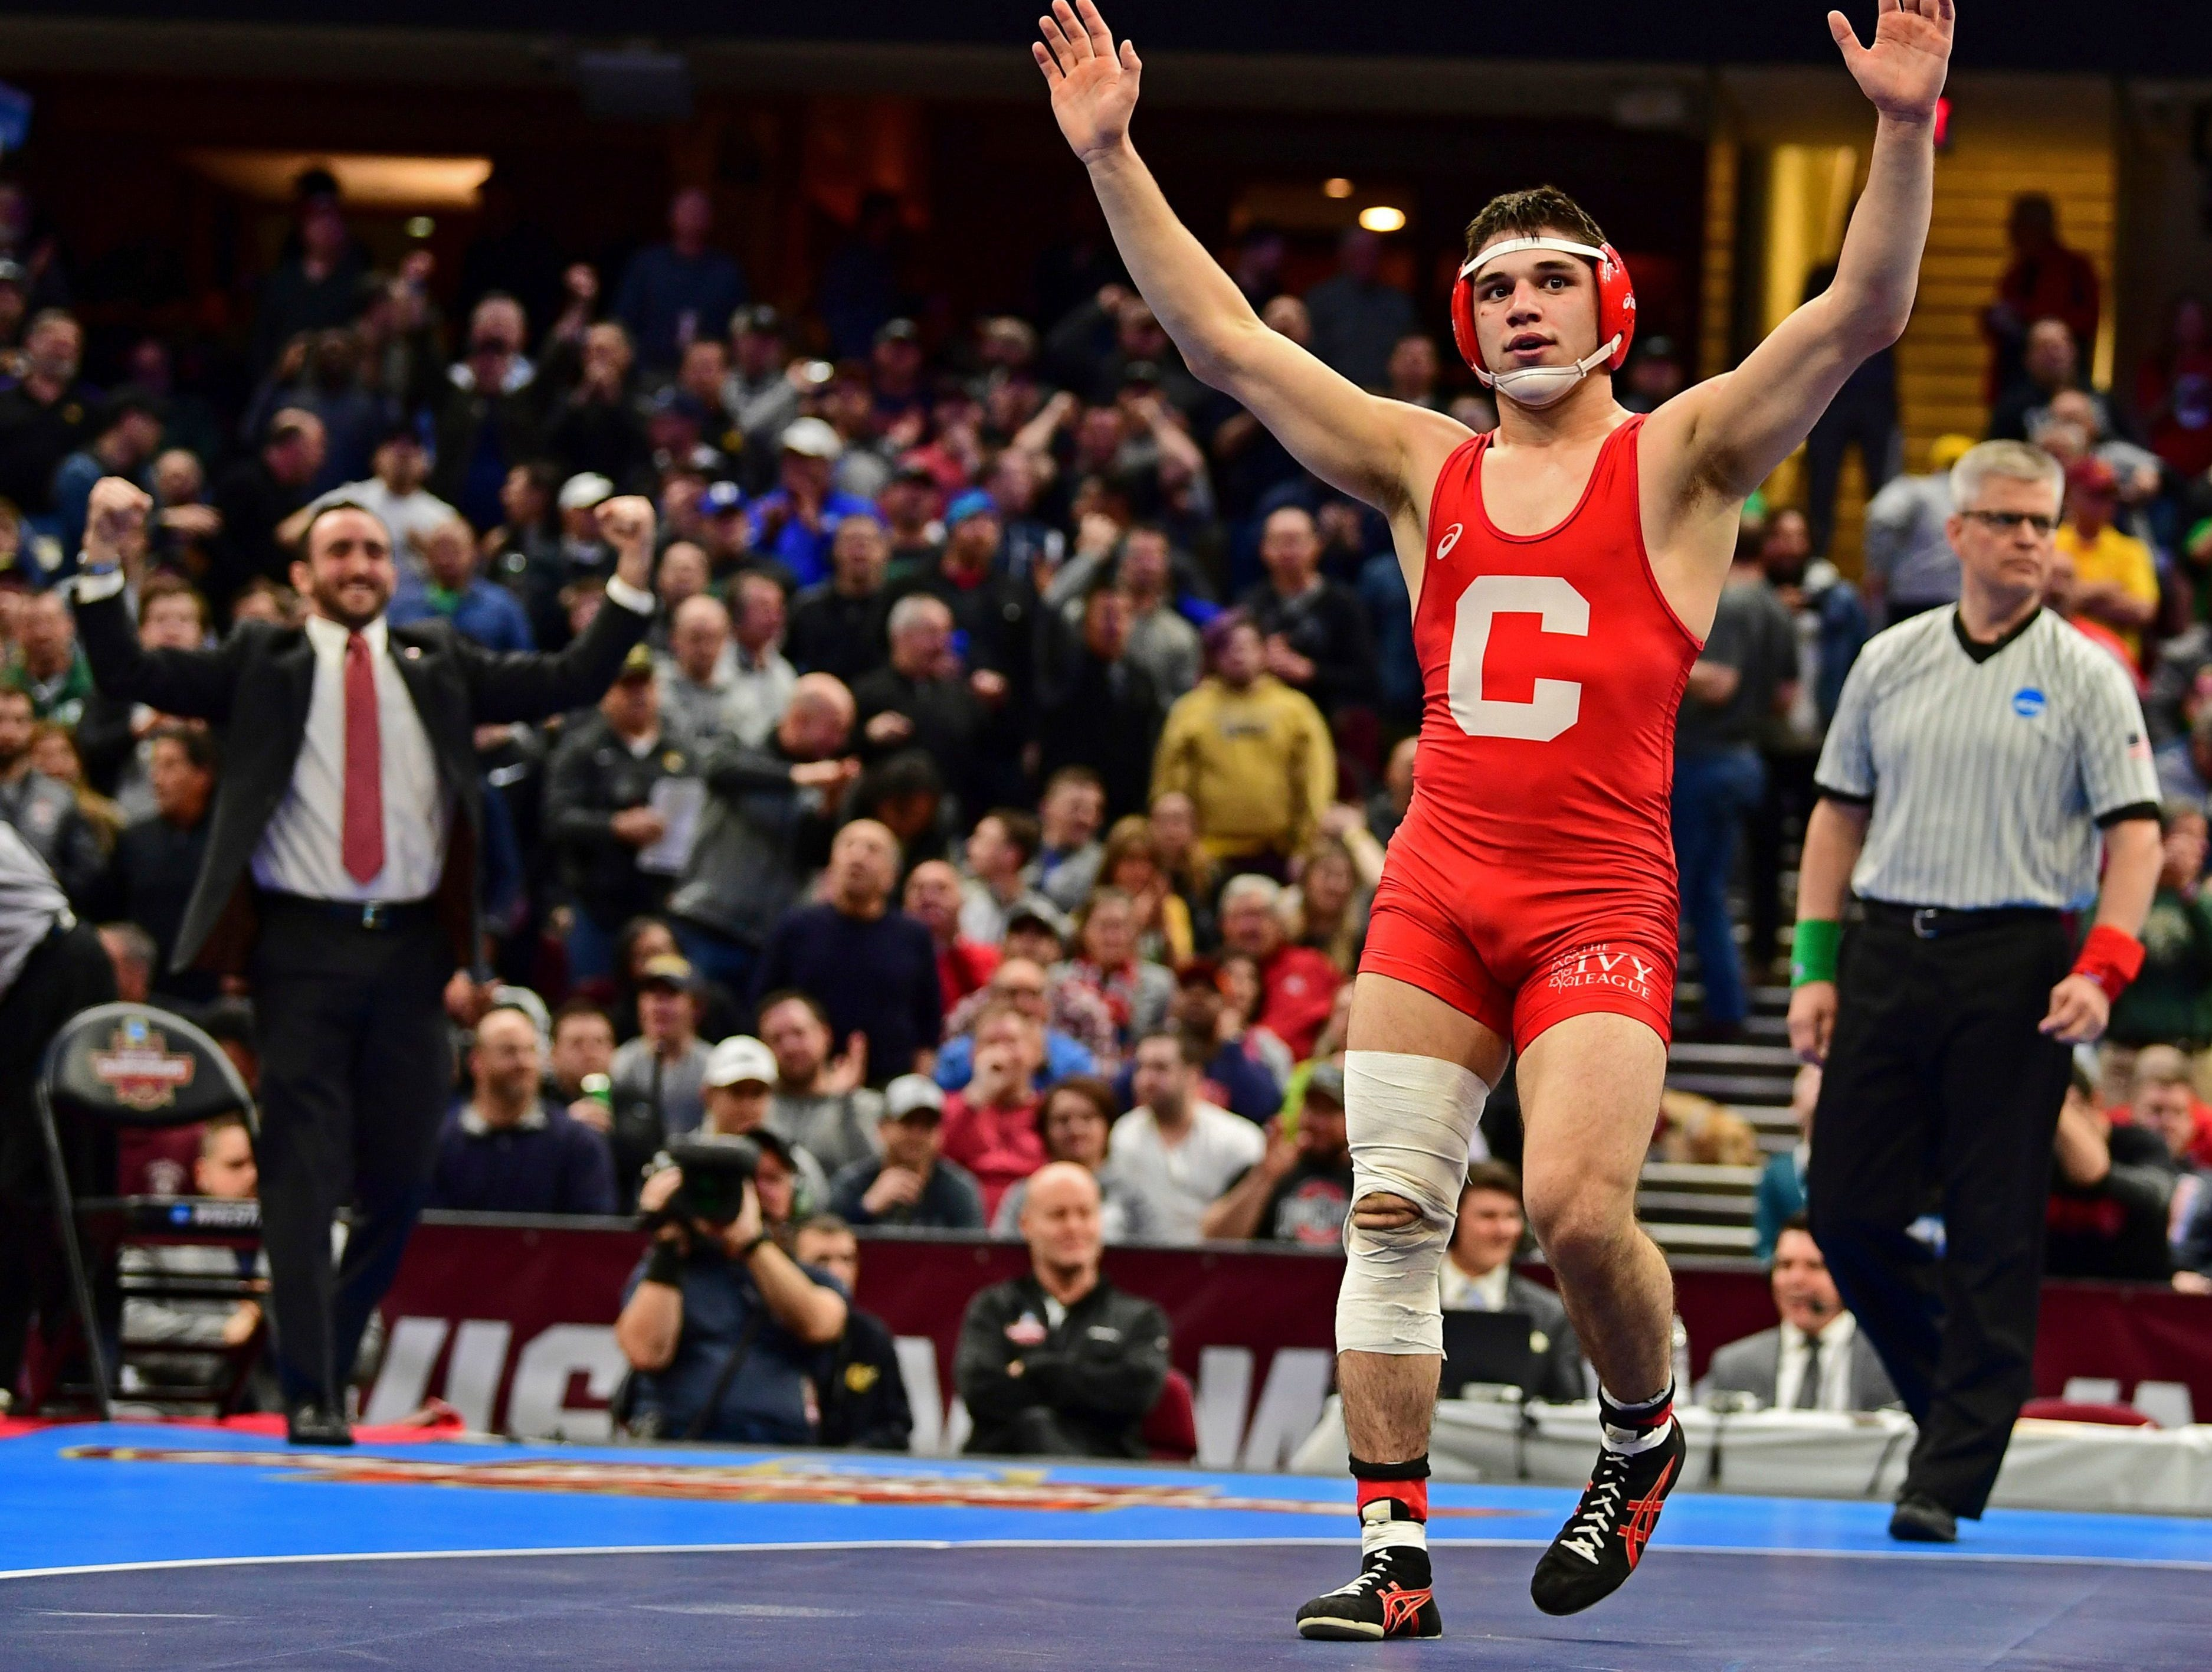 Cornell's Yanni Diakomihalis celebrates after defeating Wyoming's Bryce Meredith during the 141-pound championship match of the NCAA Division I Wrestling Championships, Saturday, March 17, 2018, in Cleveland. (AP Photo/David Dermer)